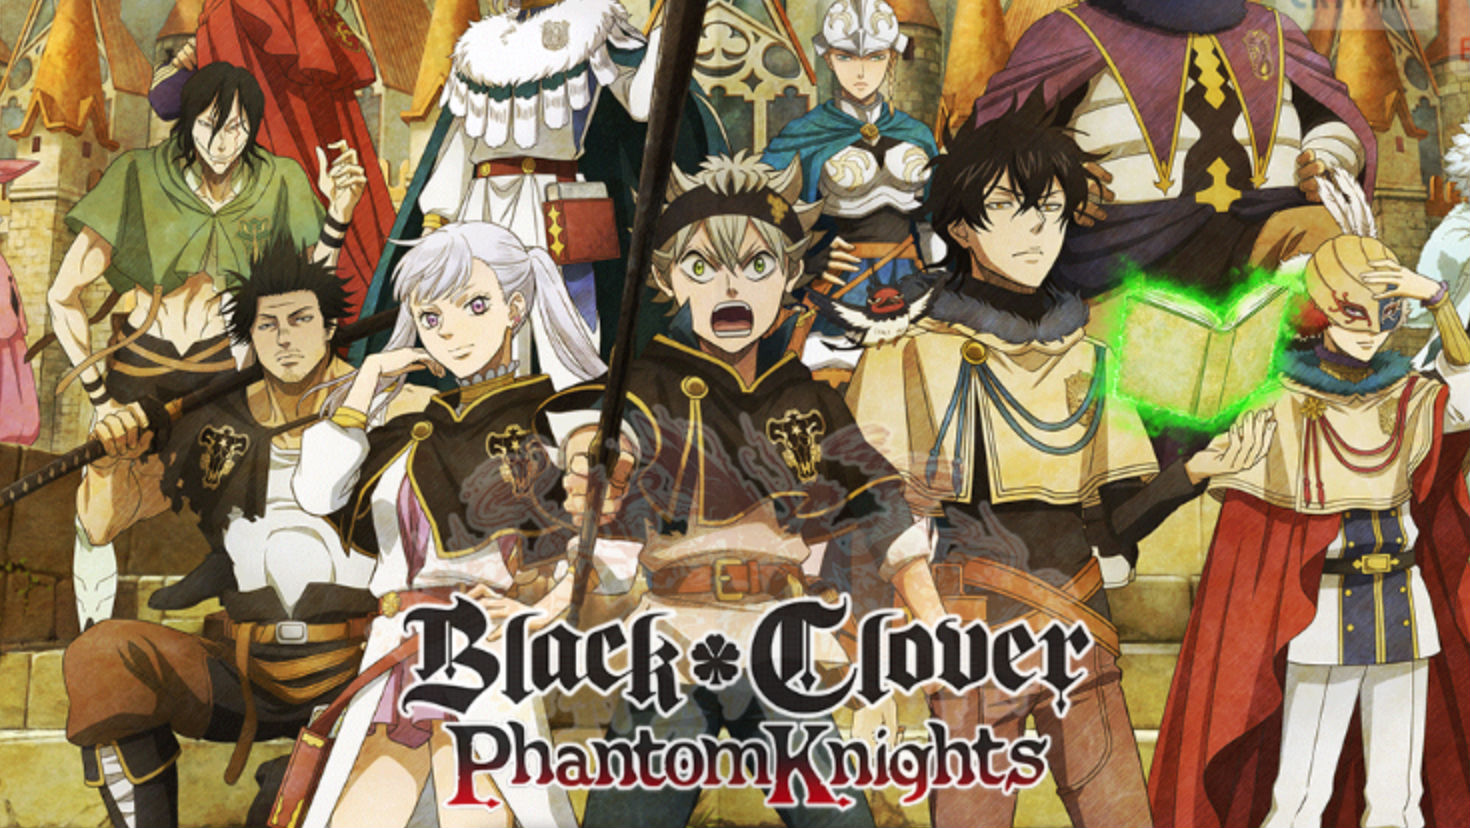 'Black Clover Phantom Knights' Guide: Tips, Tricks, and Hints to Get Your Grimoire On